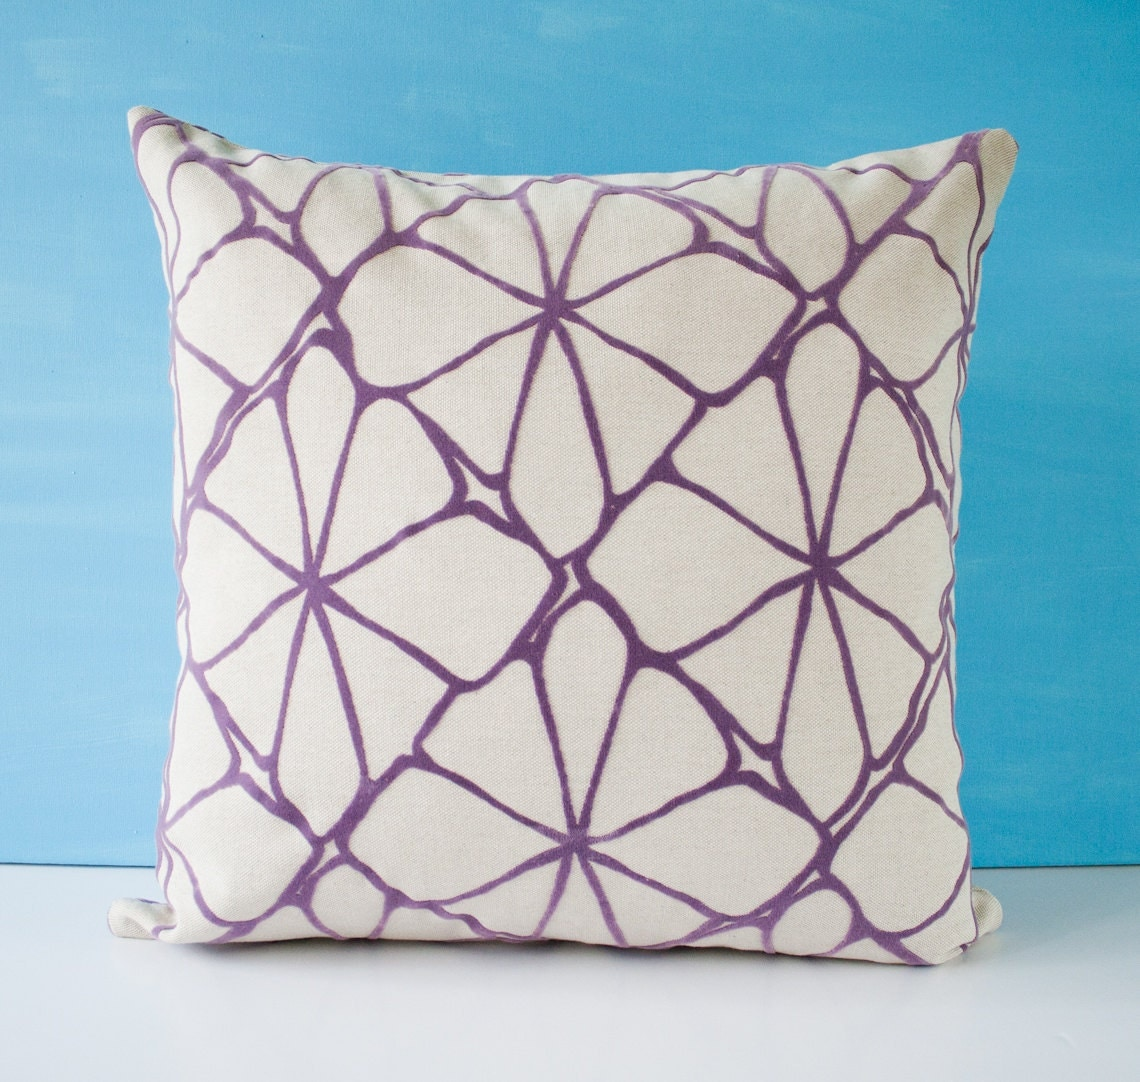 Throw Pillow Case Pattern : Purple pattern pillow cover decorative pillow throw pillow